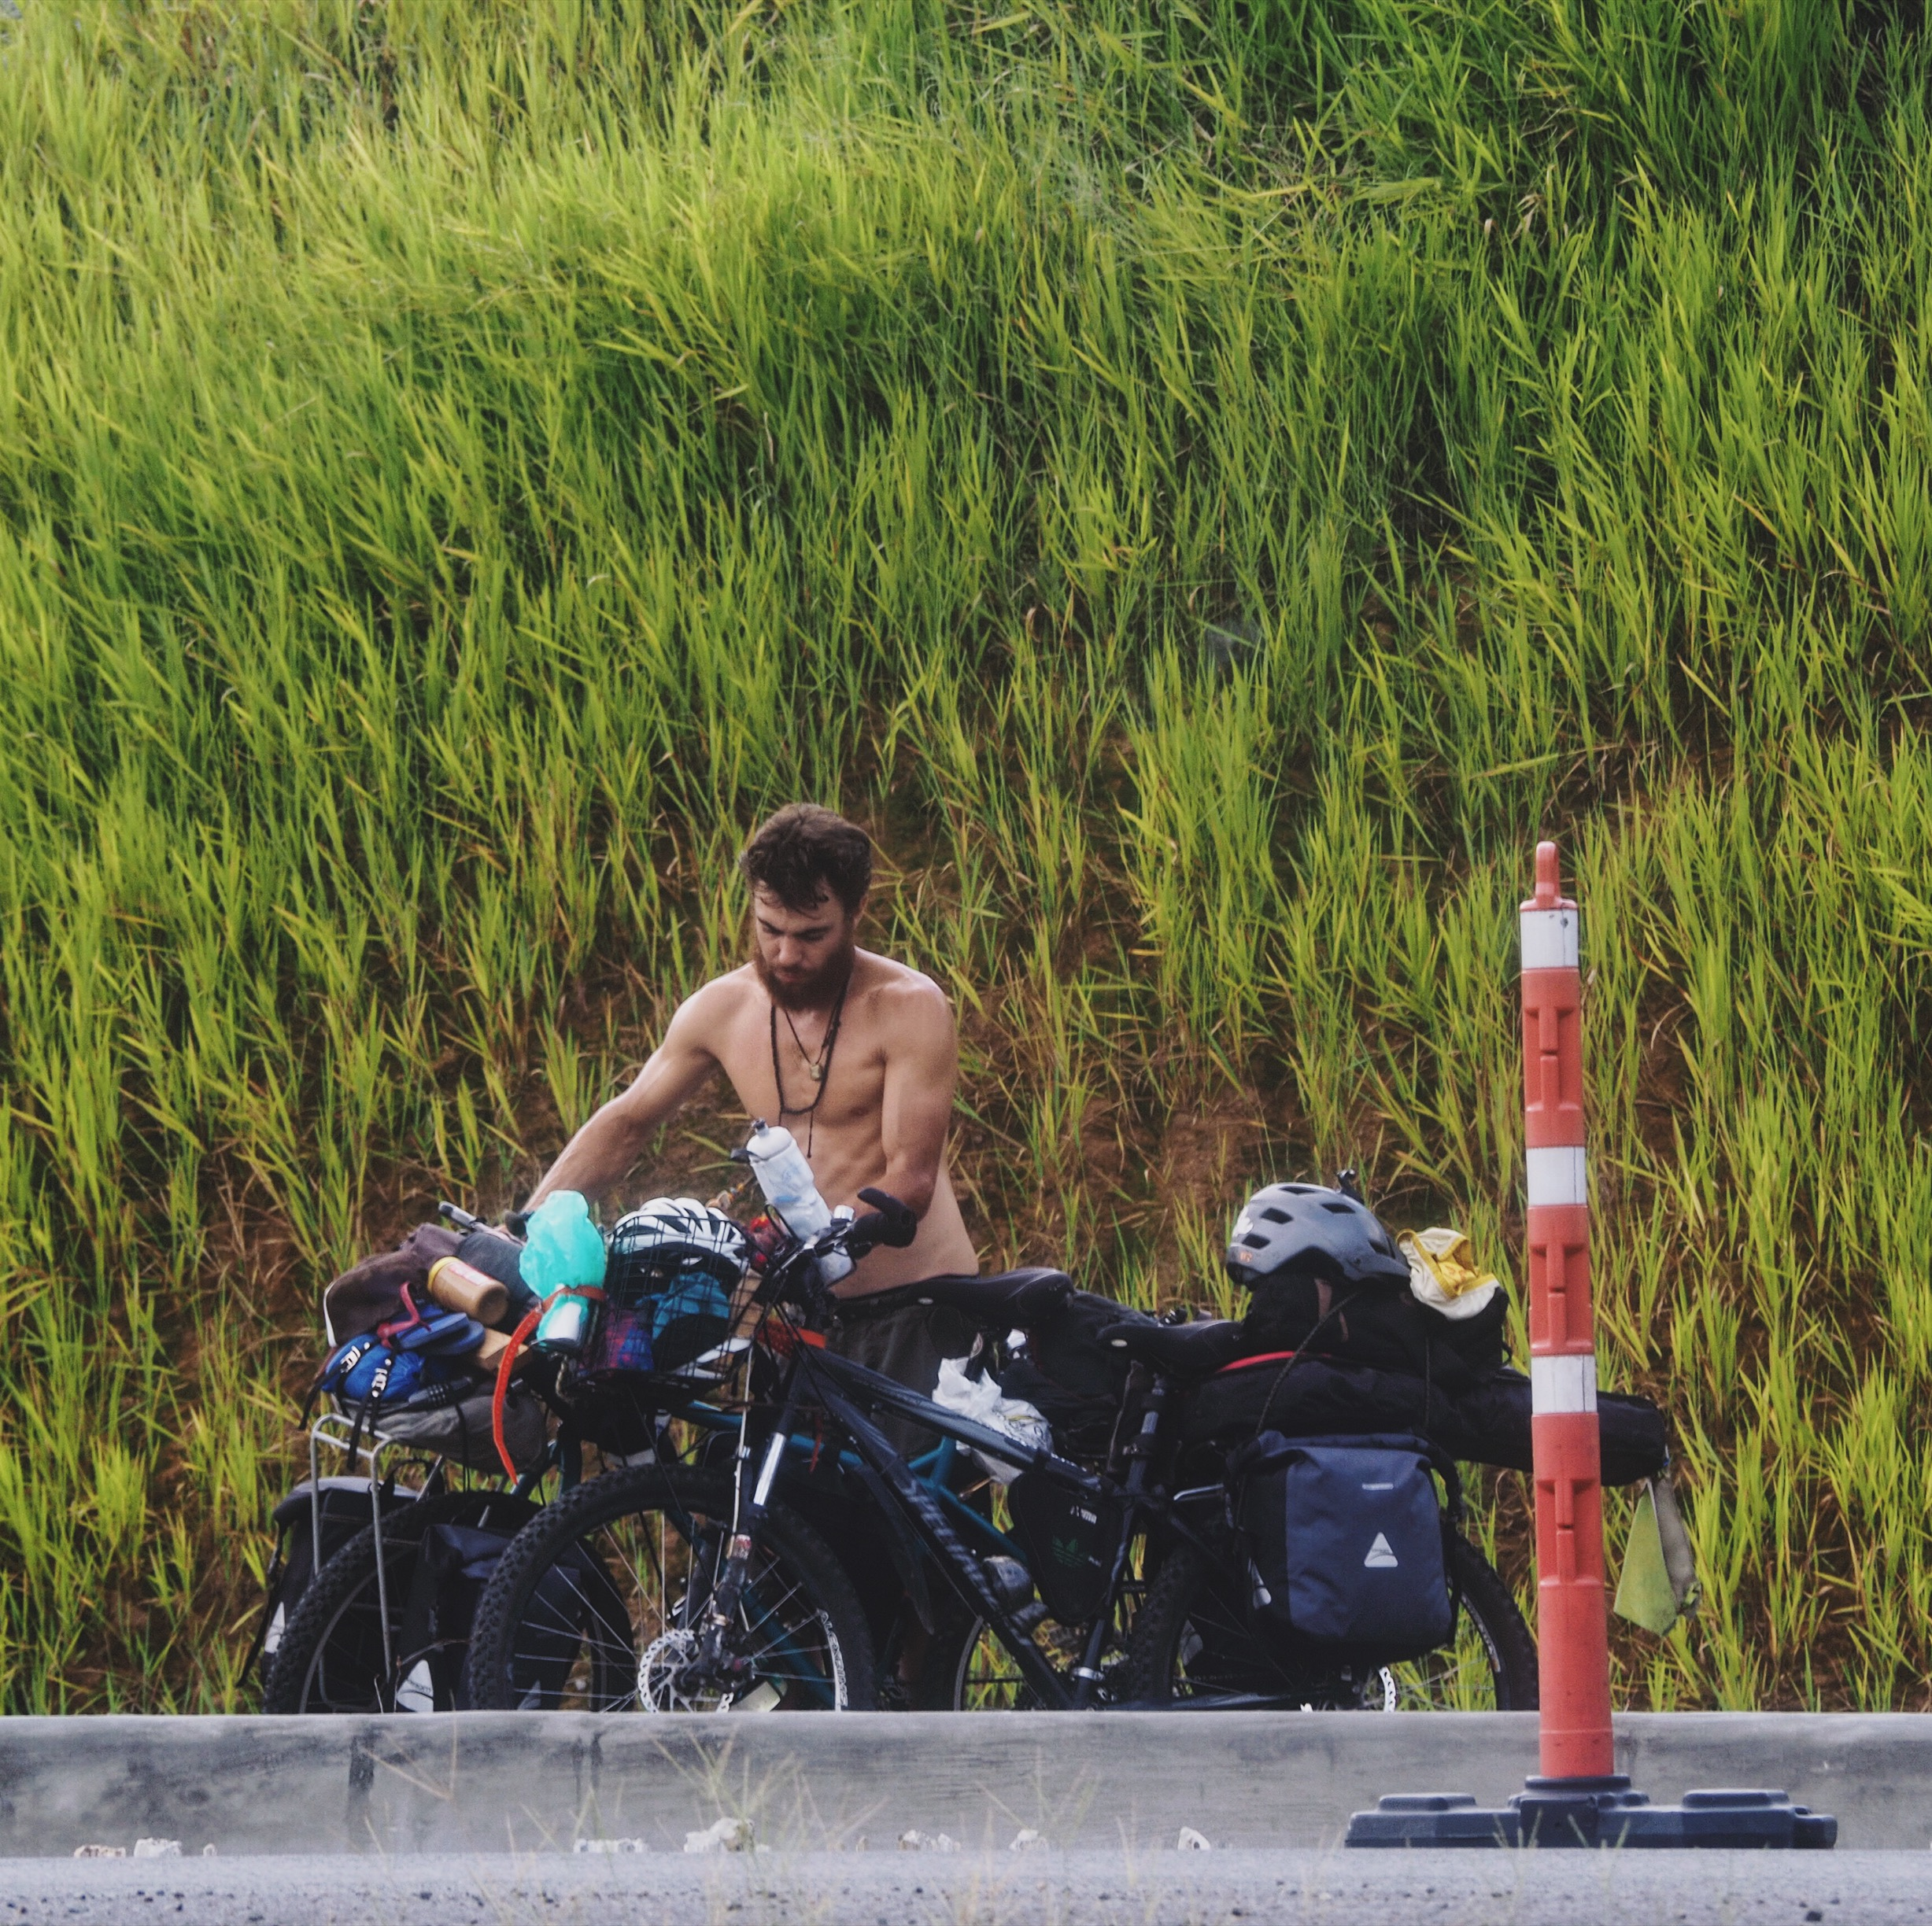 Mehedi balances the bikes on each other as we take a roadside break